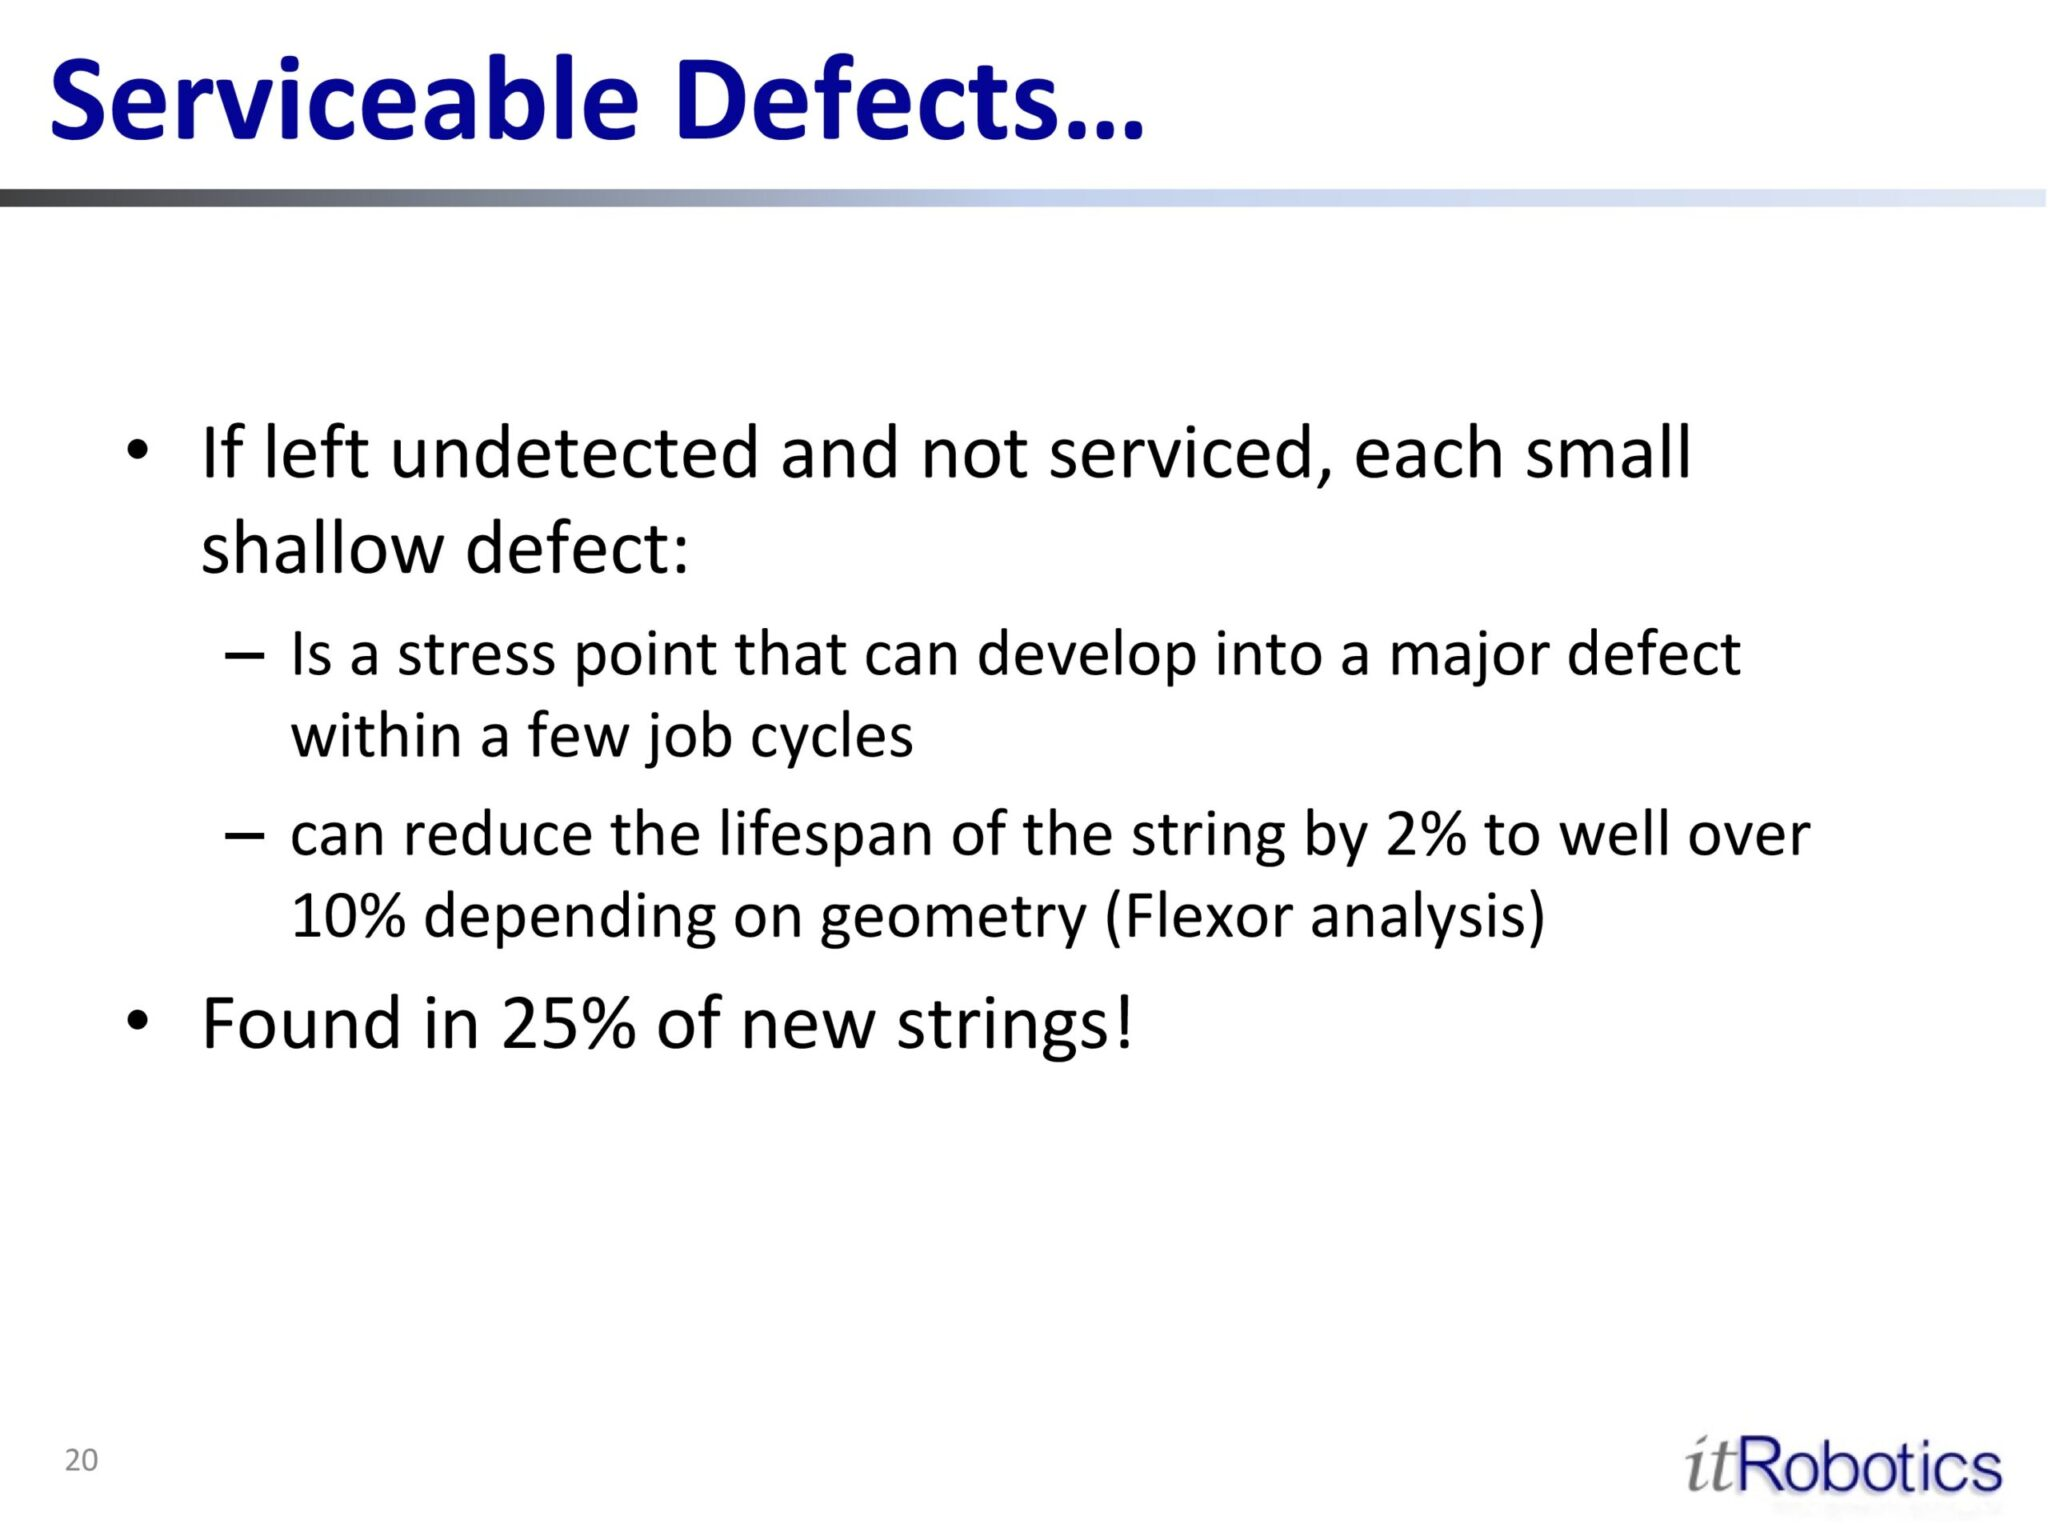 Serviceable Defects 2